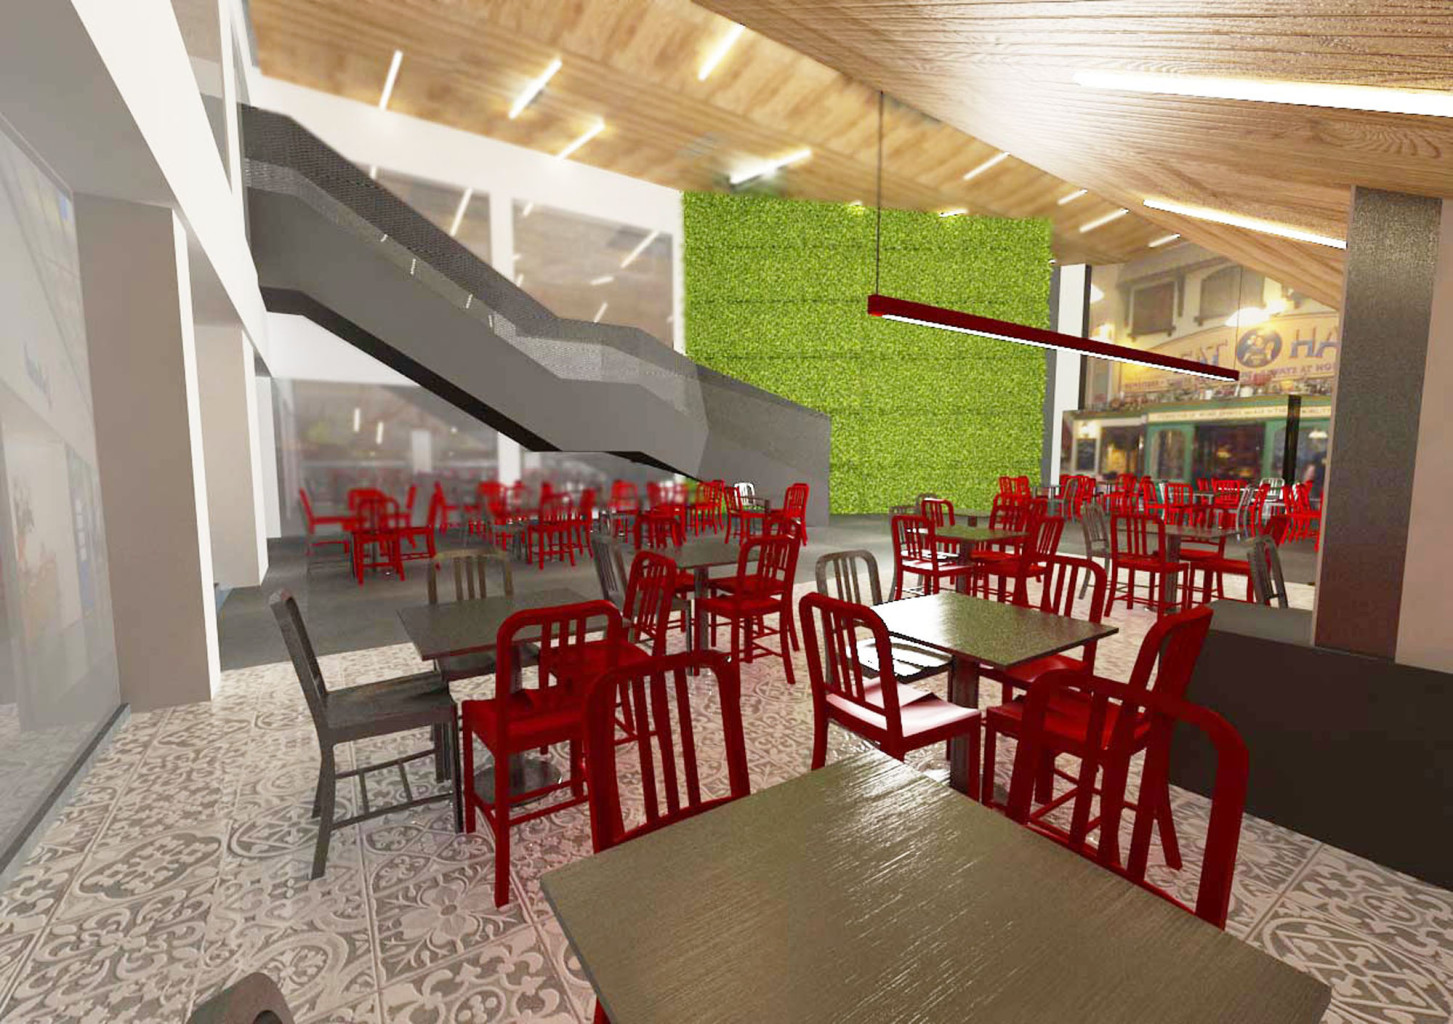 mia food court malta render 3